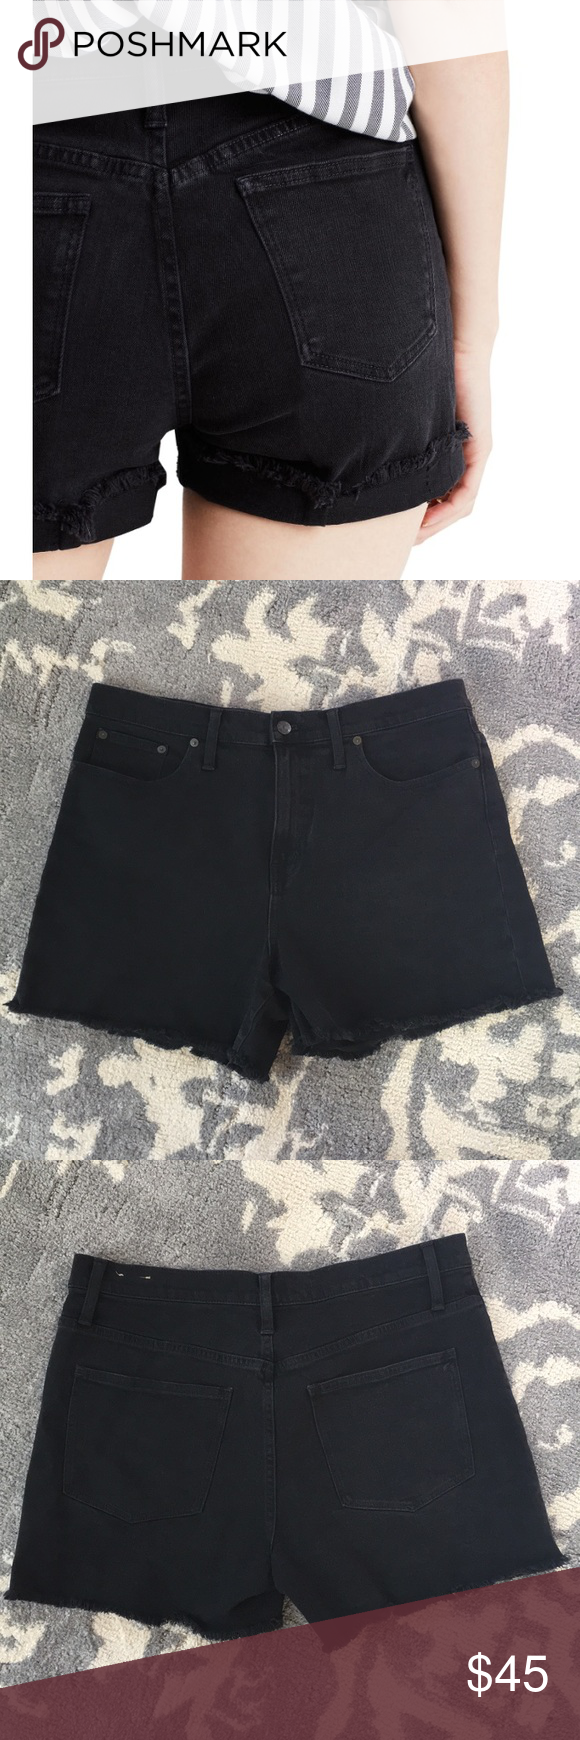 """09a3f628be Madewell High Rise Black Denim Shorts Excellent preowned condition Madewell  Denim Shorts Raw Hem 4"""" inseam Style C1732 99% Cotton 1% Elastane No Trades  ..."""